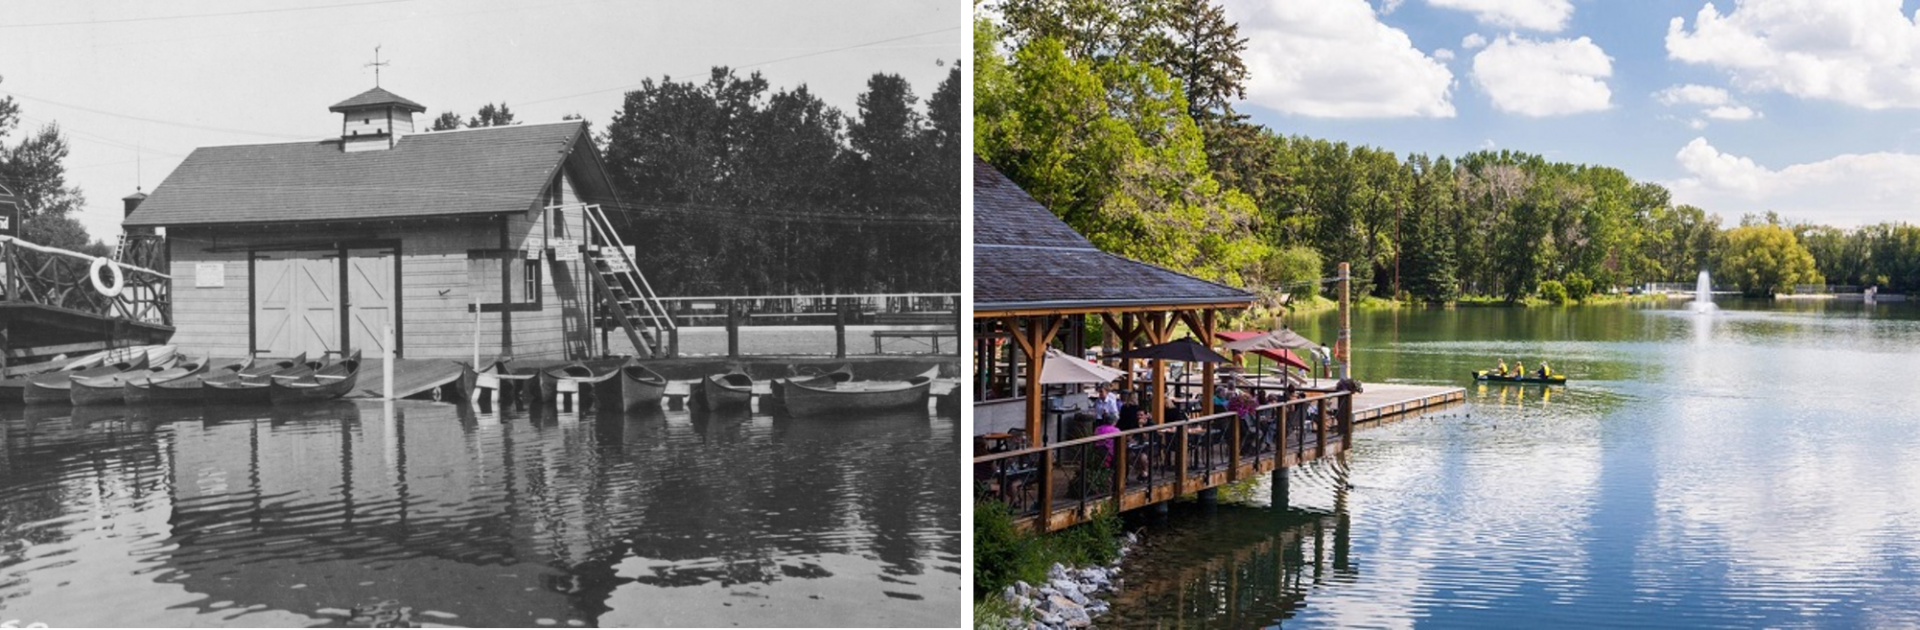 Bowness park before and after